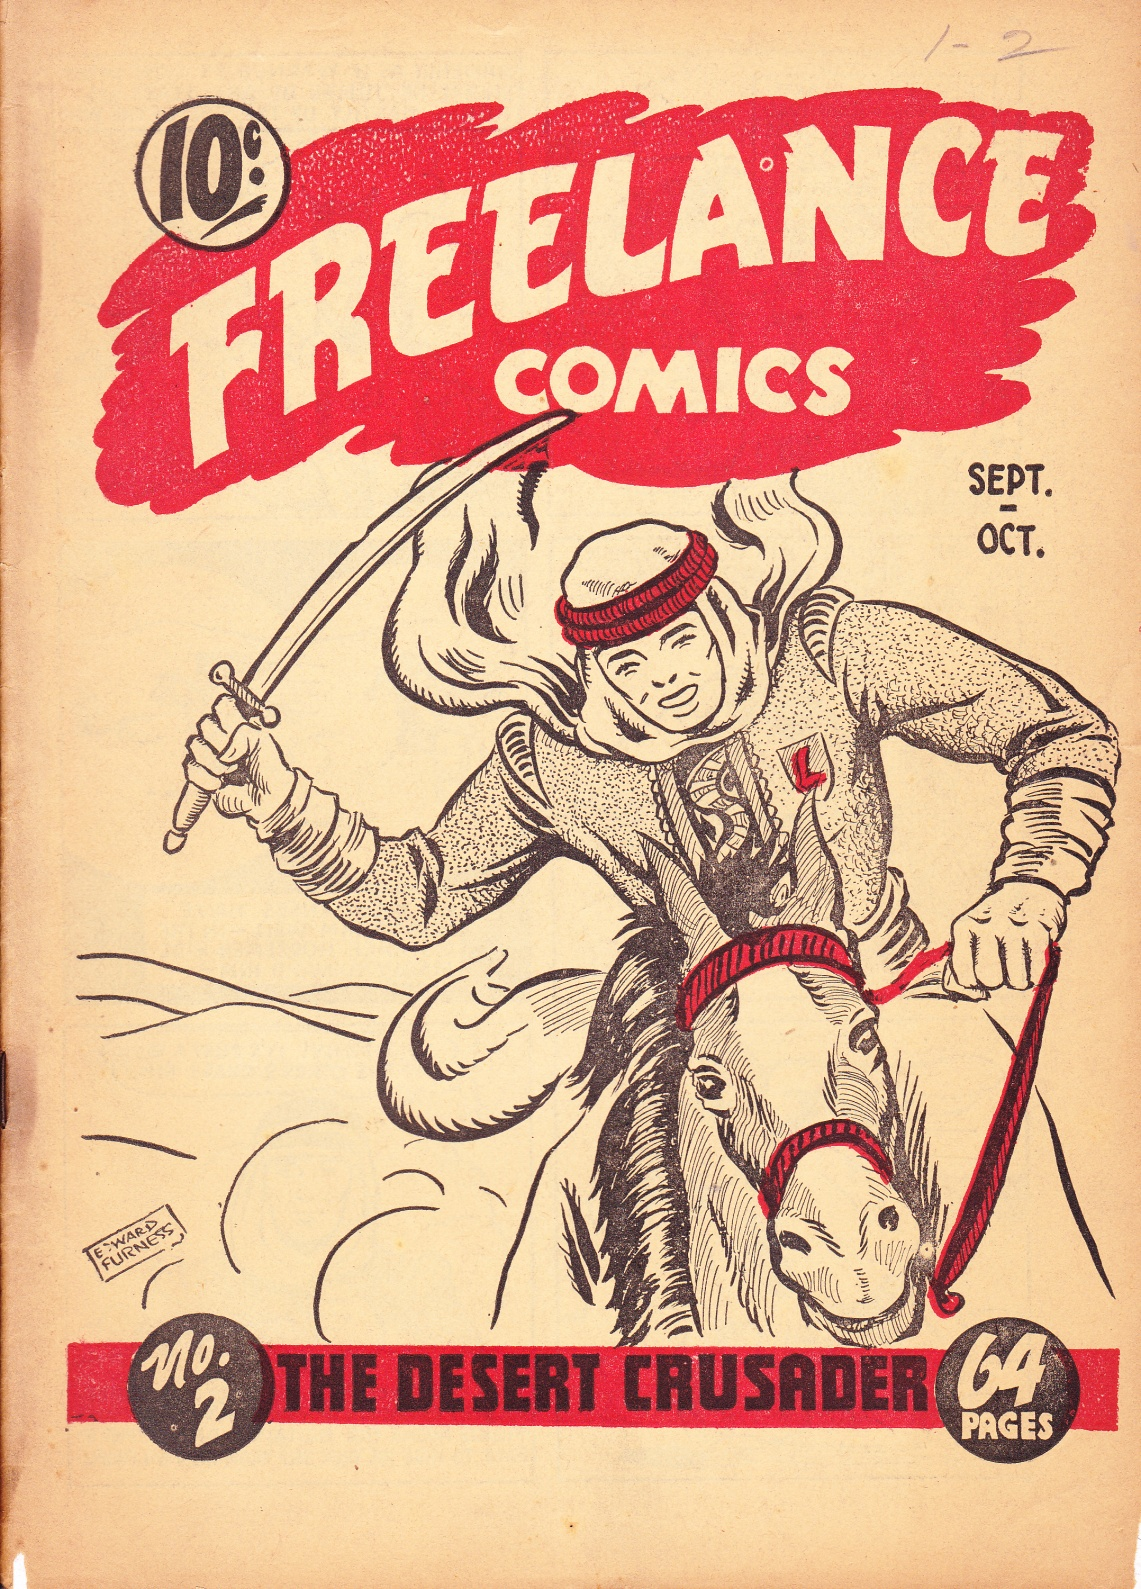 C:\Users\Robert\Documents\CARTOONING ILLUSTRATION ANIMATION\IMAGE CARTOON\IMAGE CARTOON F\FREELANCE Freelance Comics 1-2 Sept.-Oct. 1941 fc.jpg